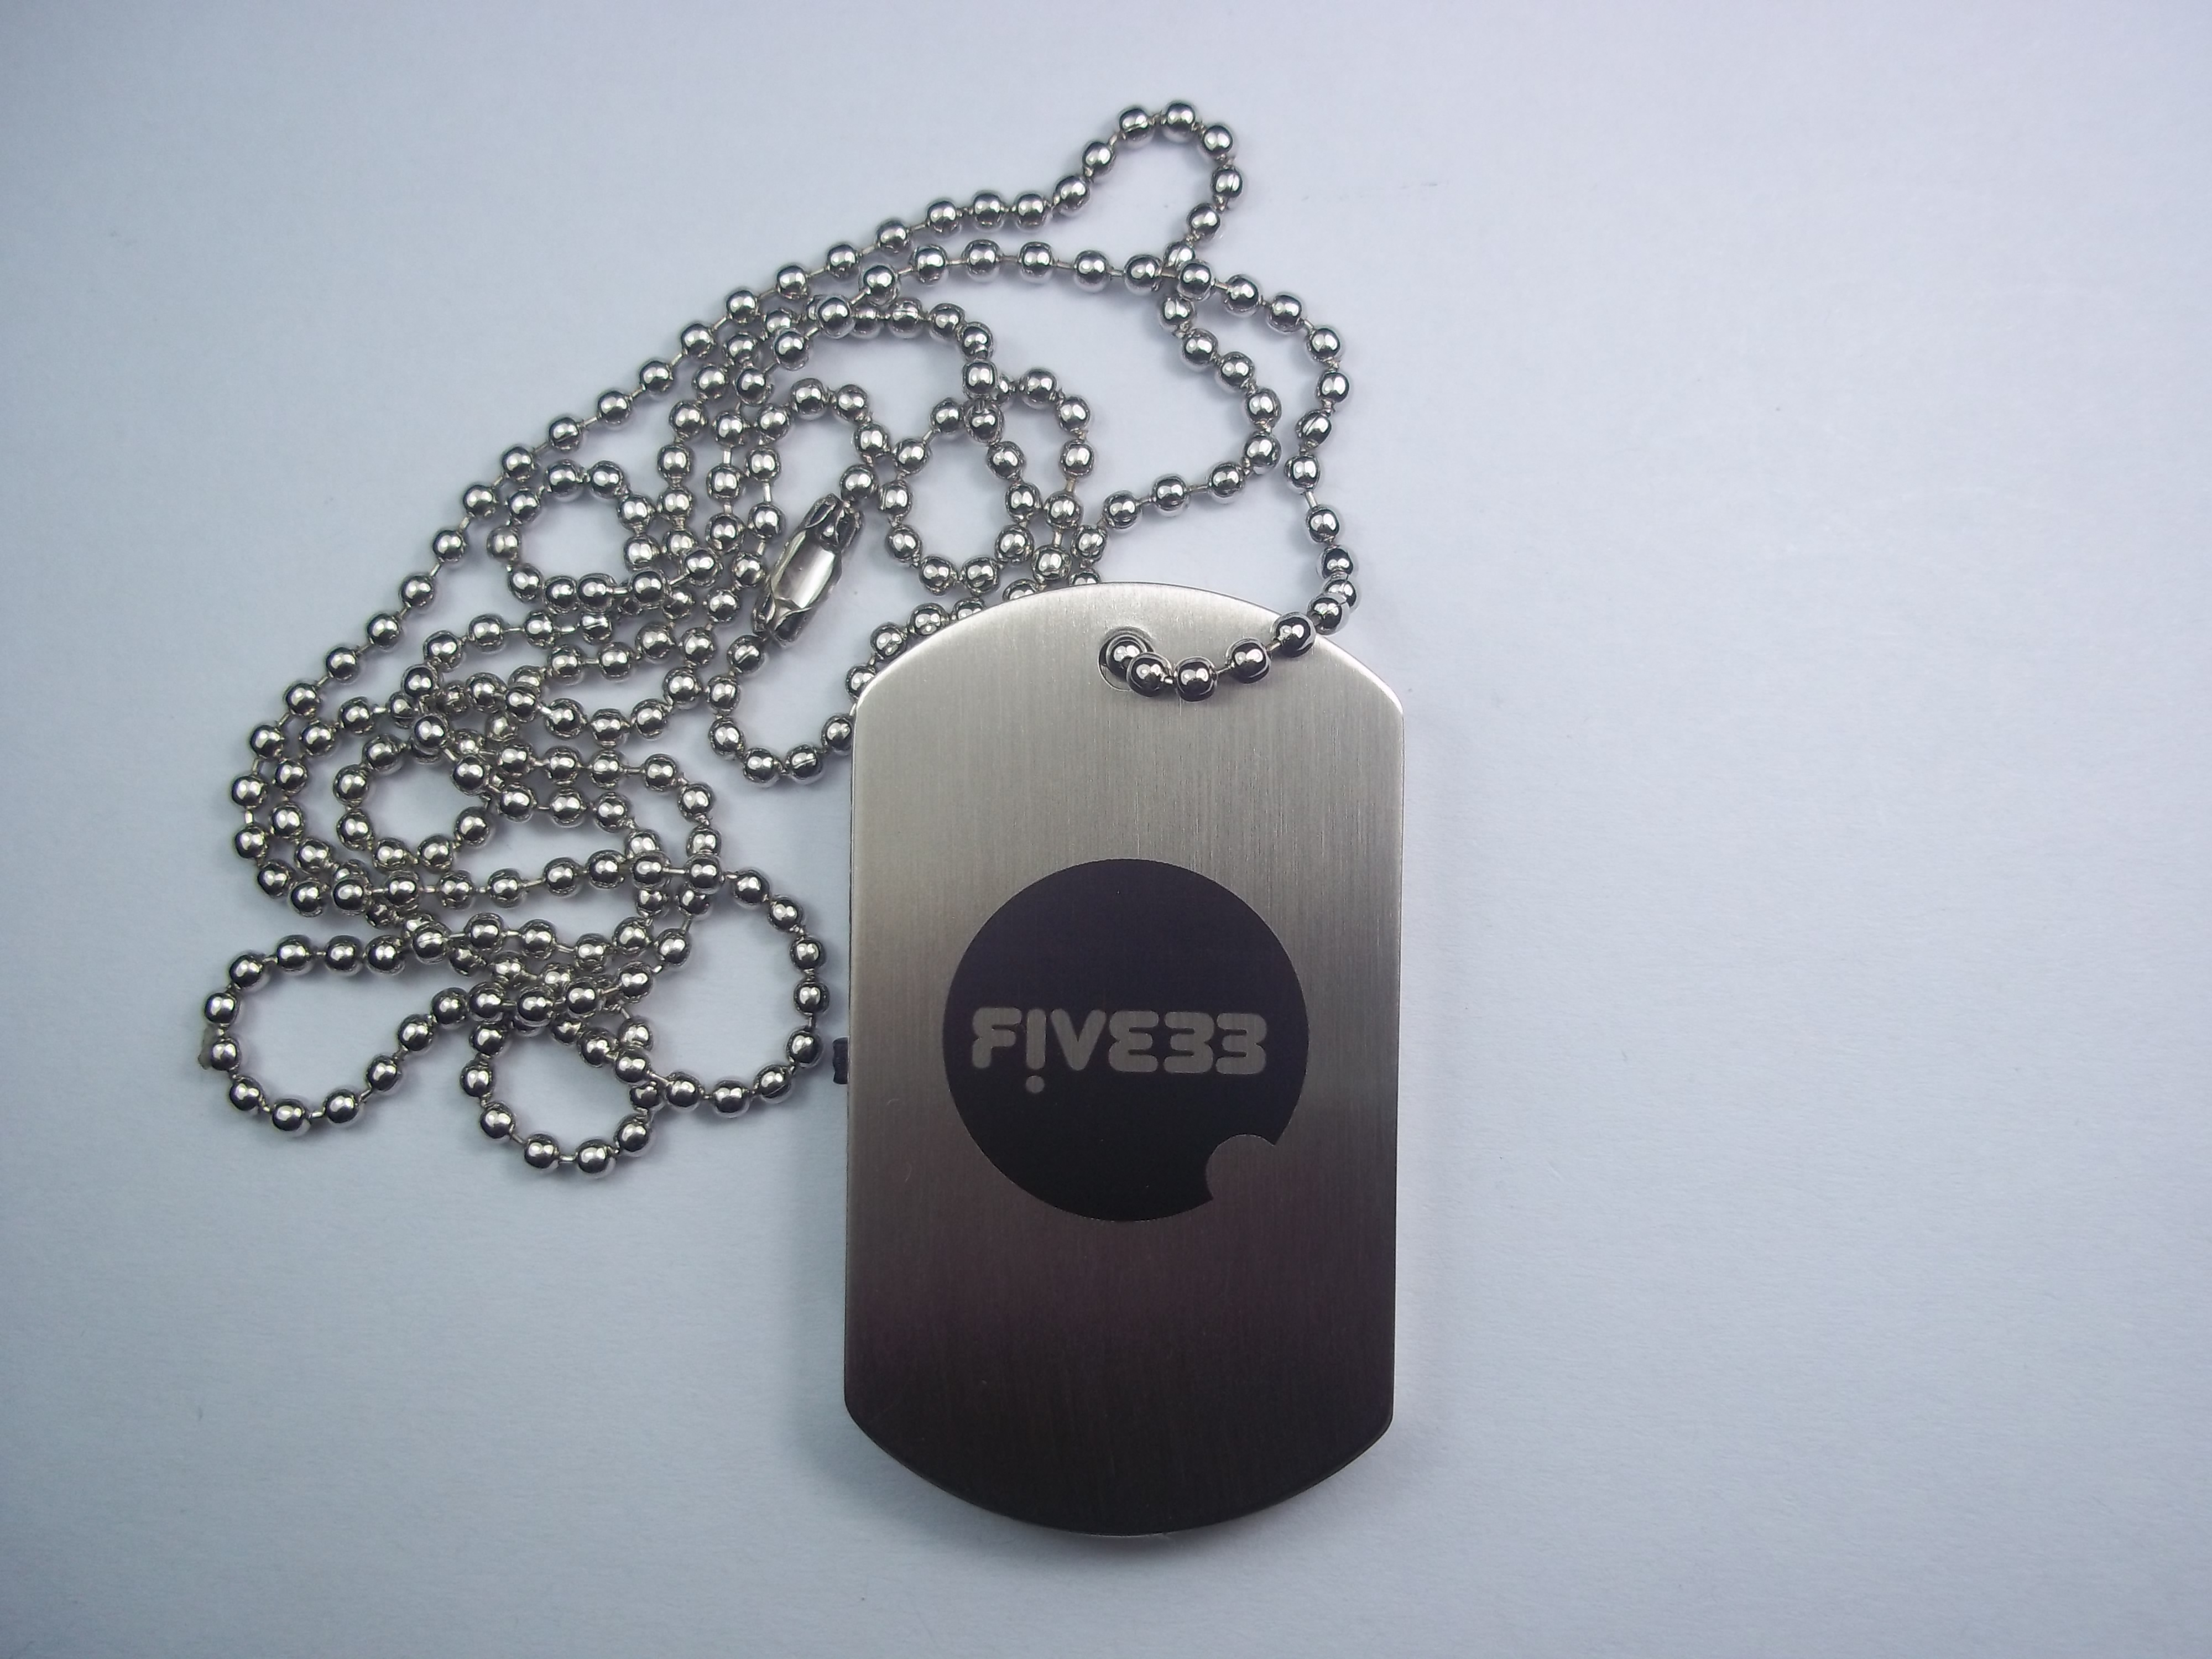 Five33 Dogtag